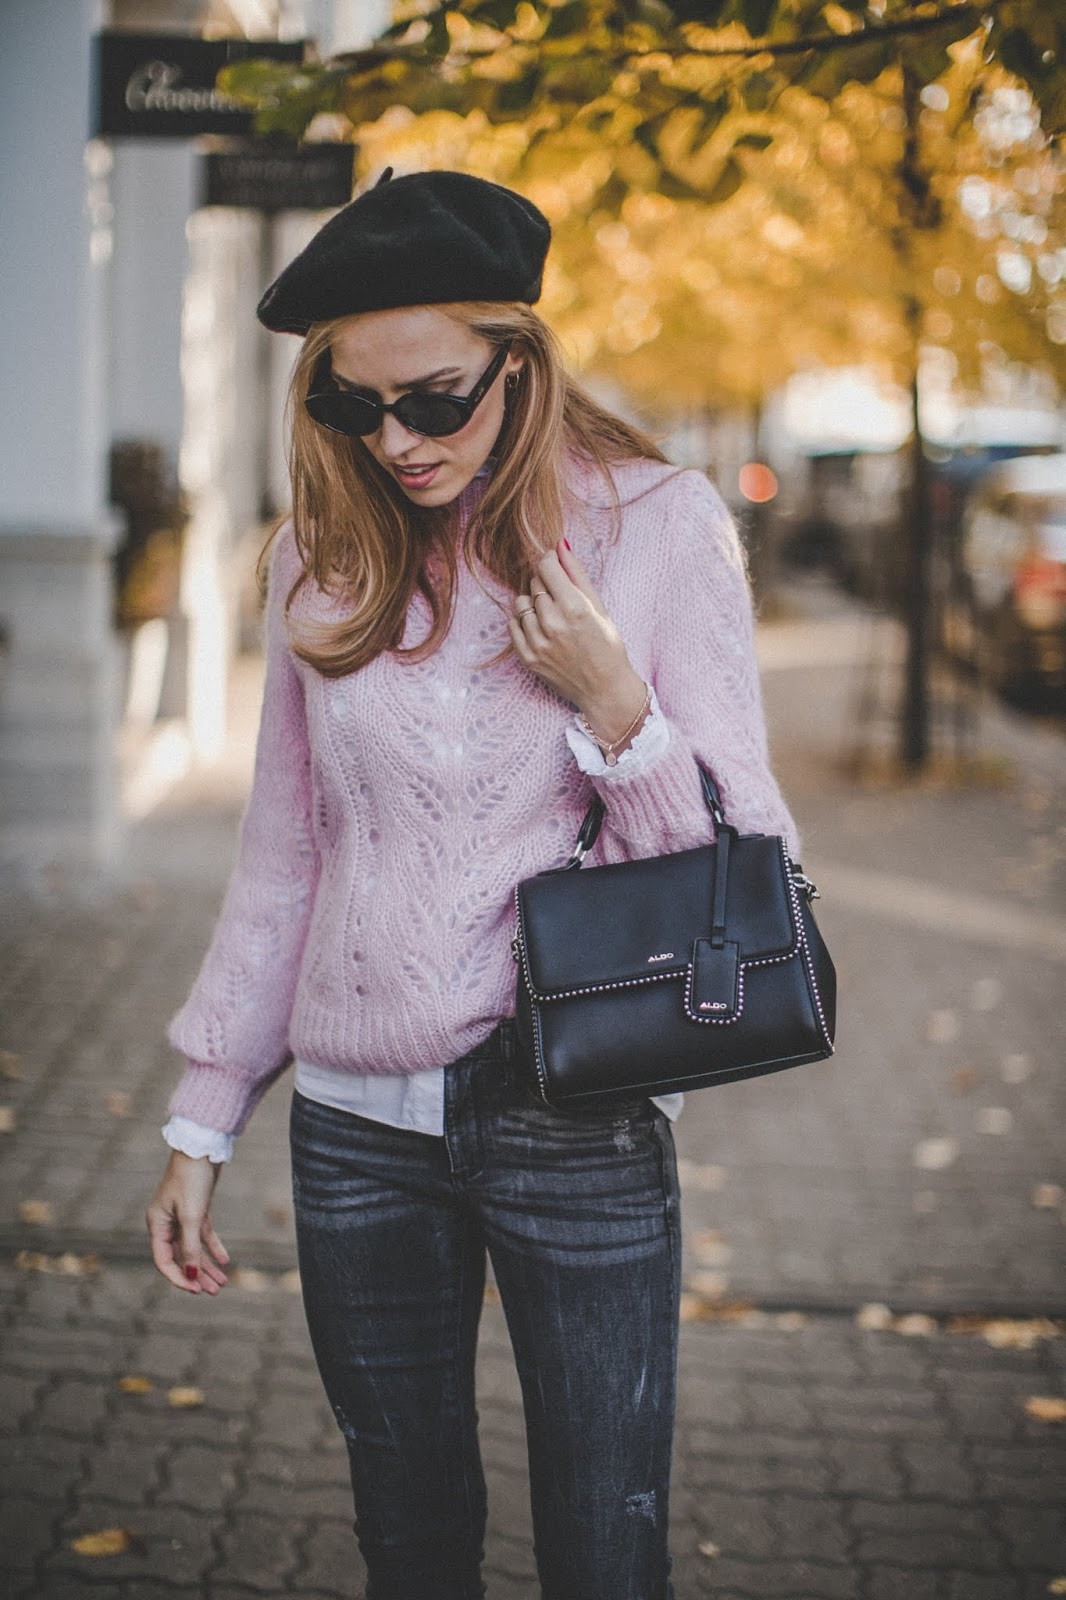 beret hat knit jumper fall outfit street style